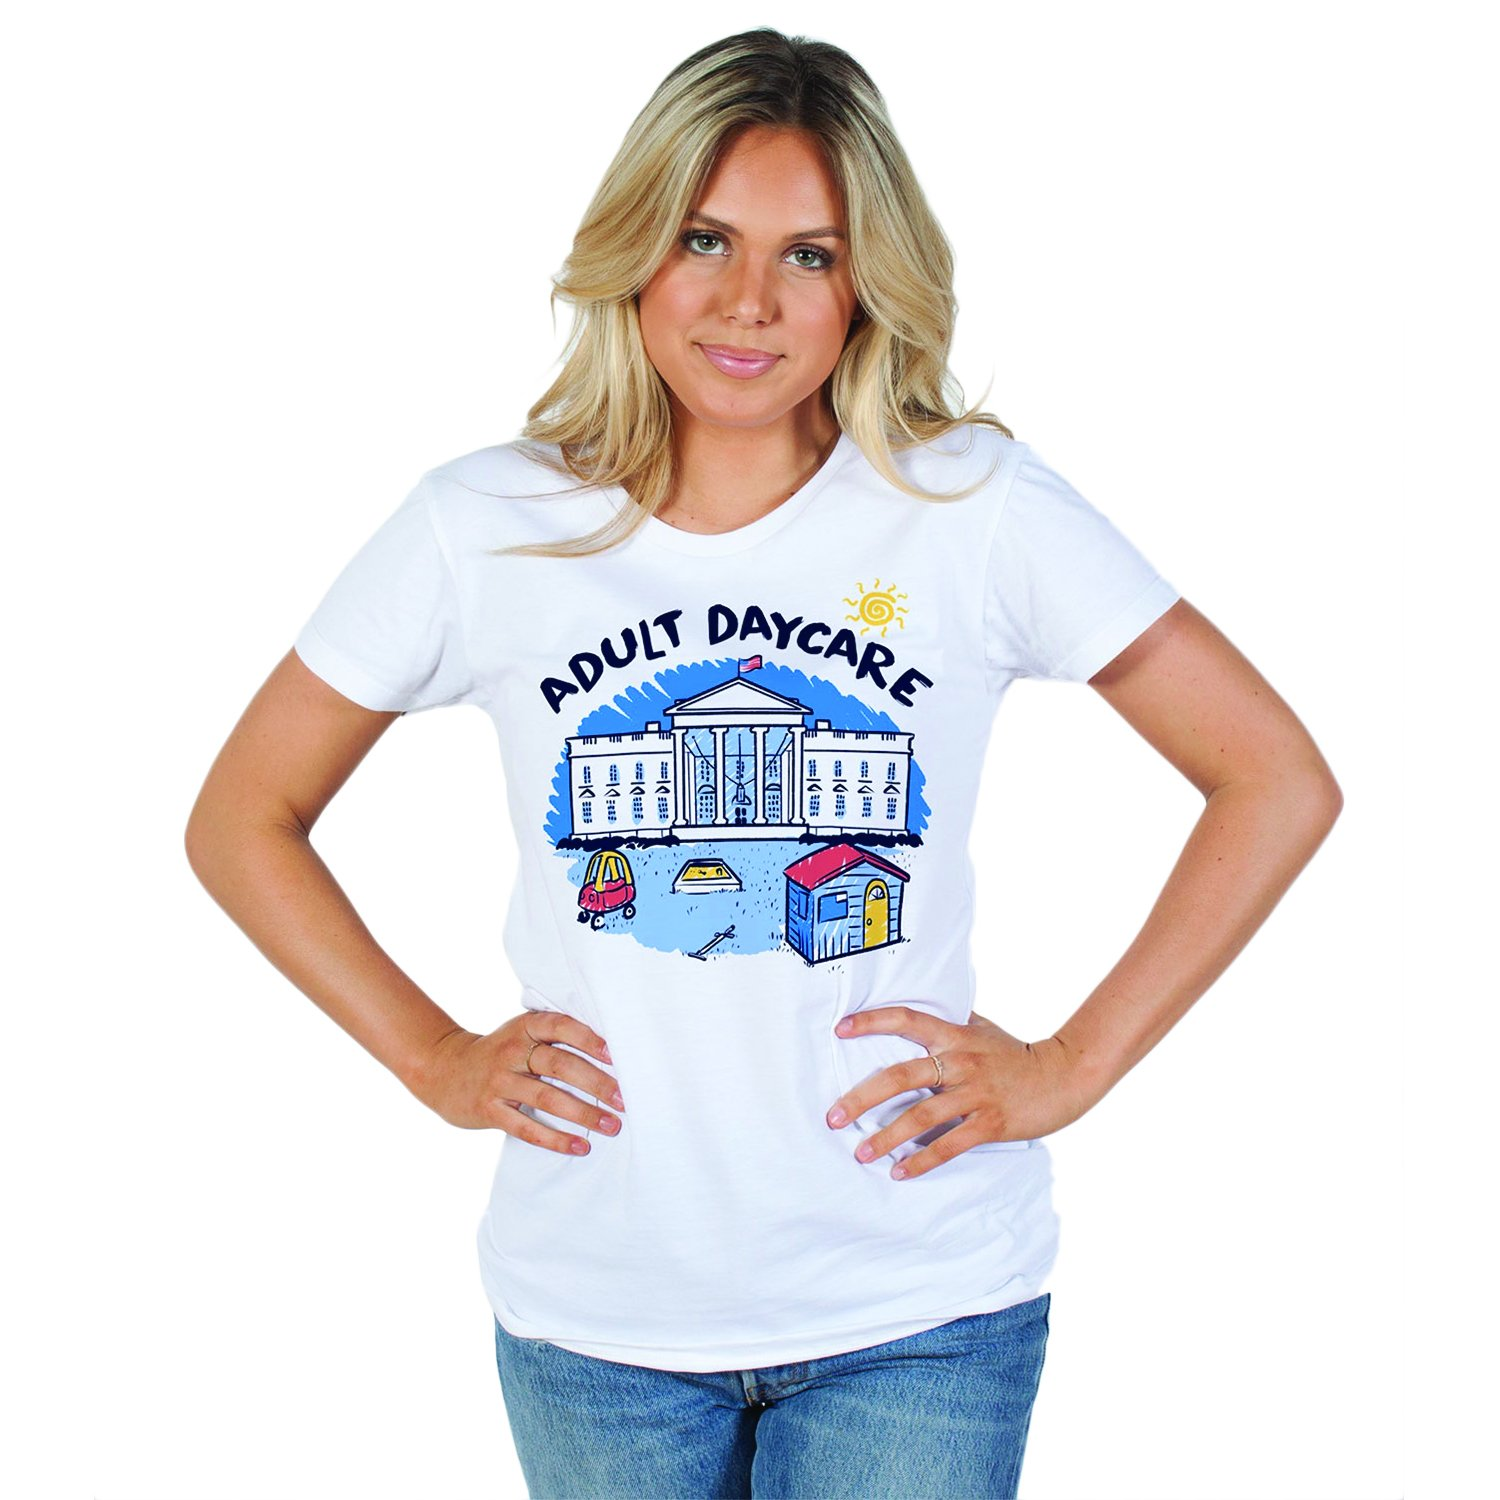 fcb23f81 JOIN IN ON THE FUN: Headline has been making intelligently funny tees and  apparel from San Francisco since 2004. Back then, George W. Bush was  president, ...